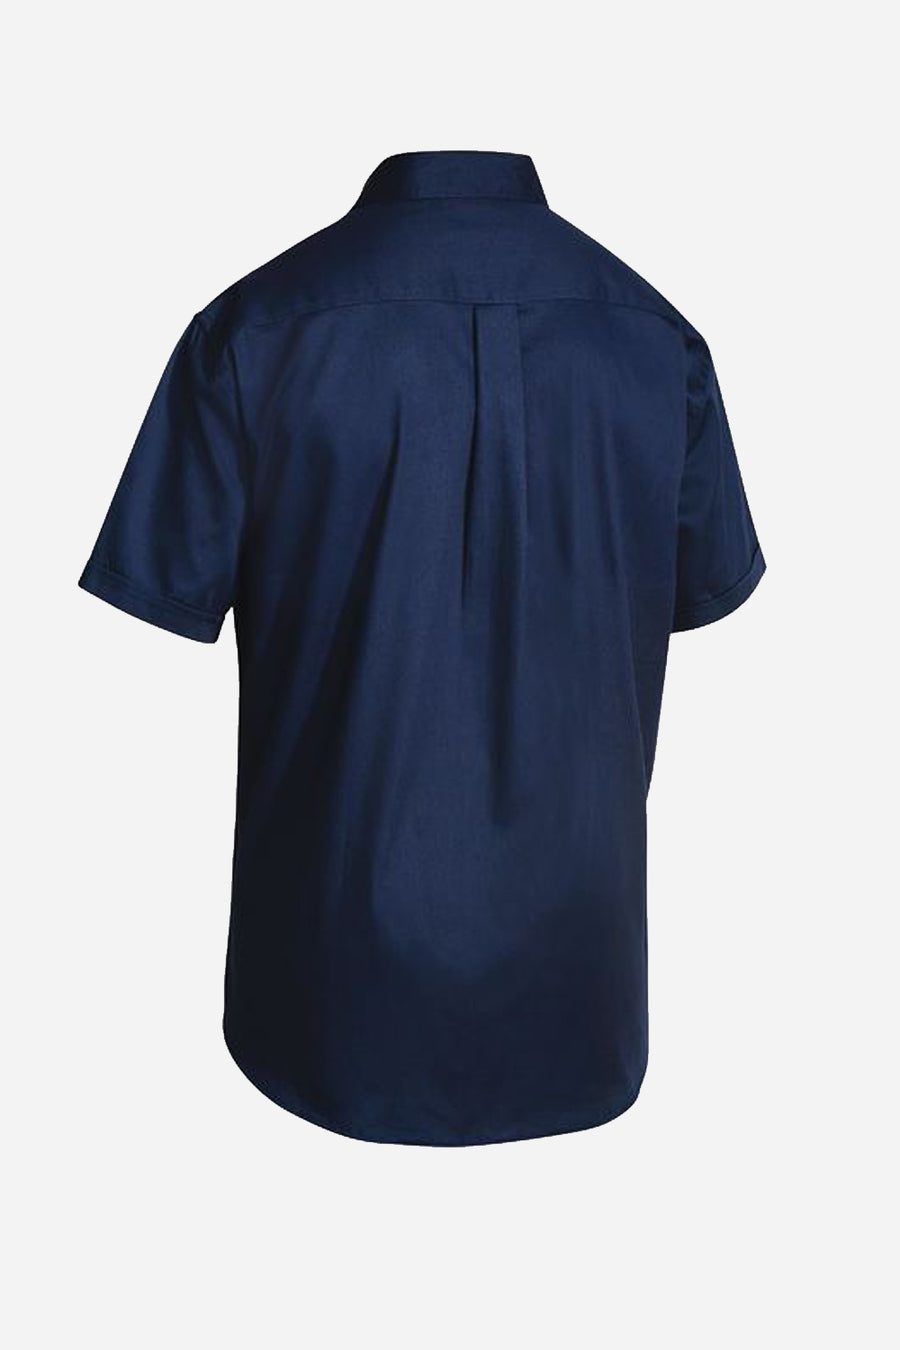 Veterinary drill shirt navy s/s men's